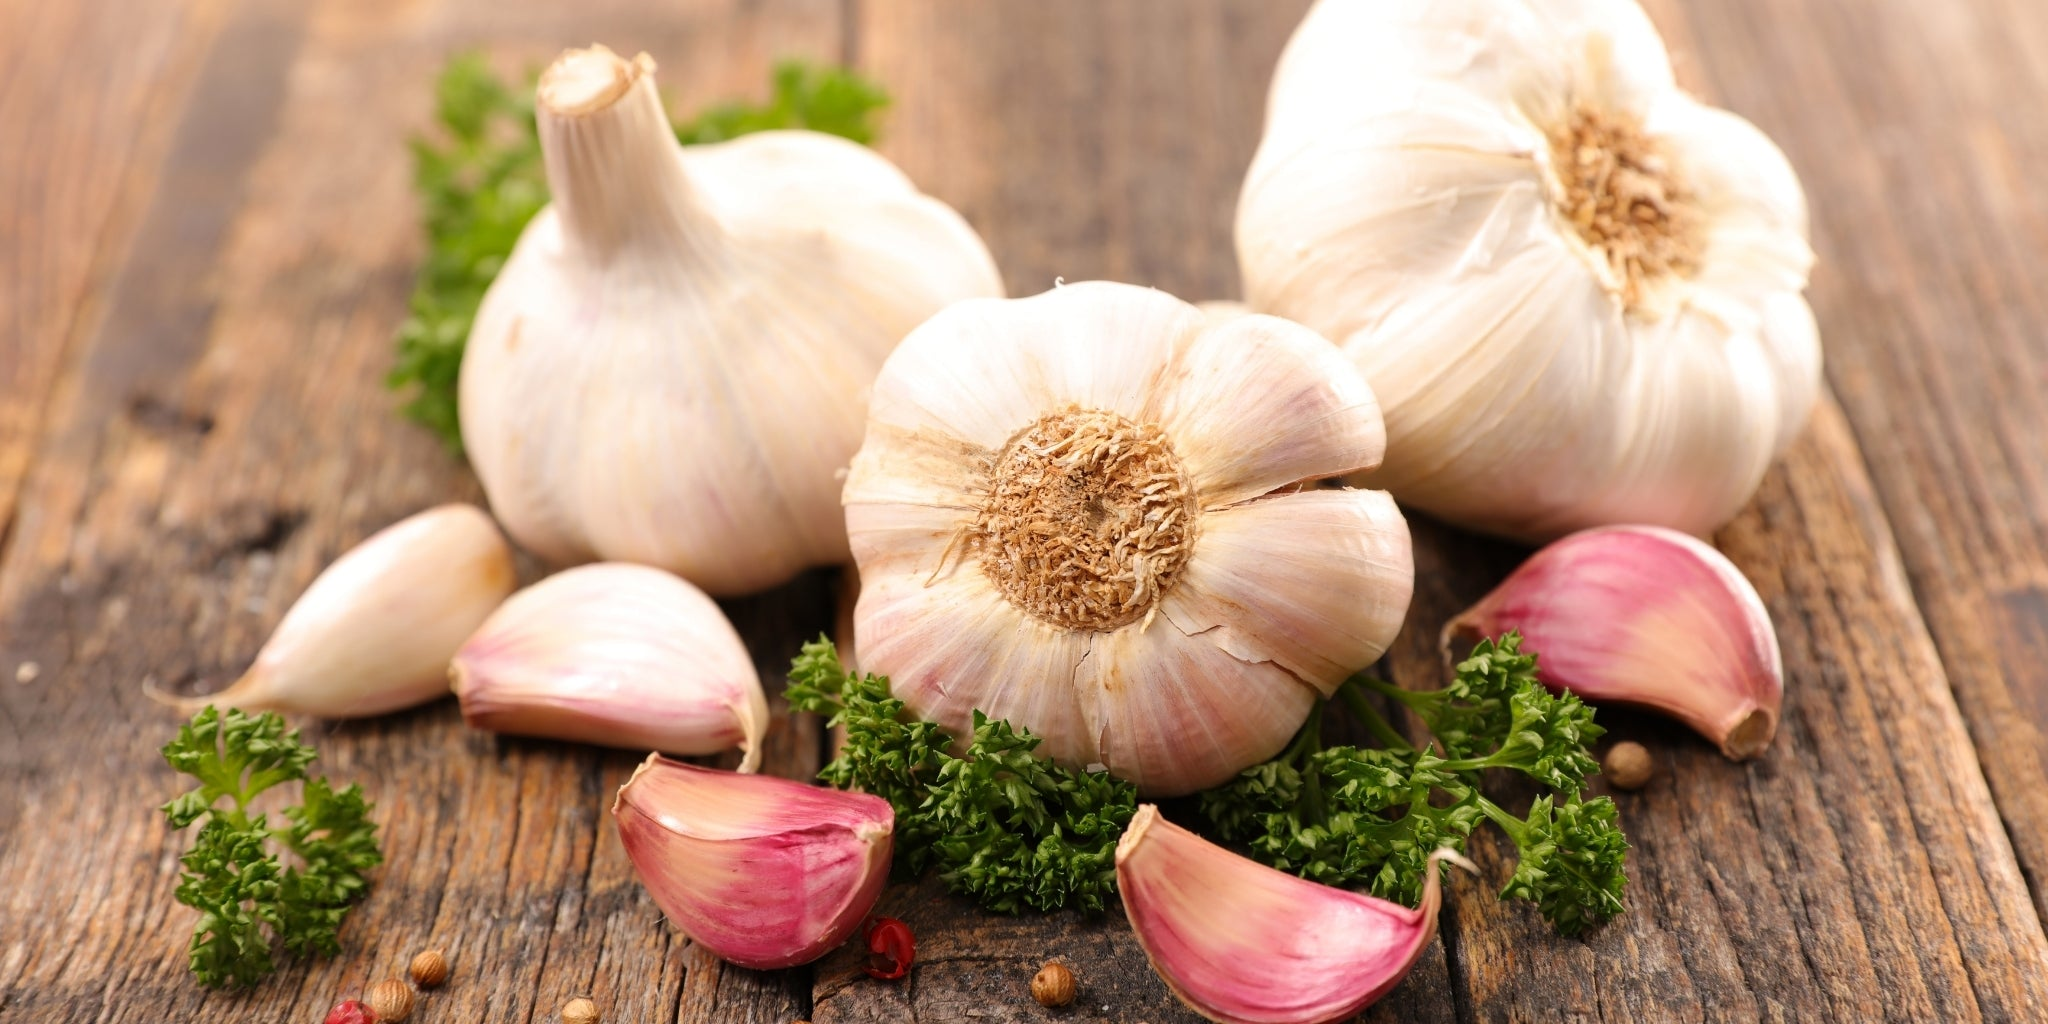 The best organic garlic supplement and it's benefits